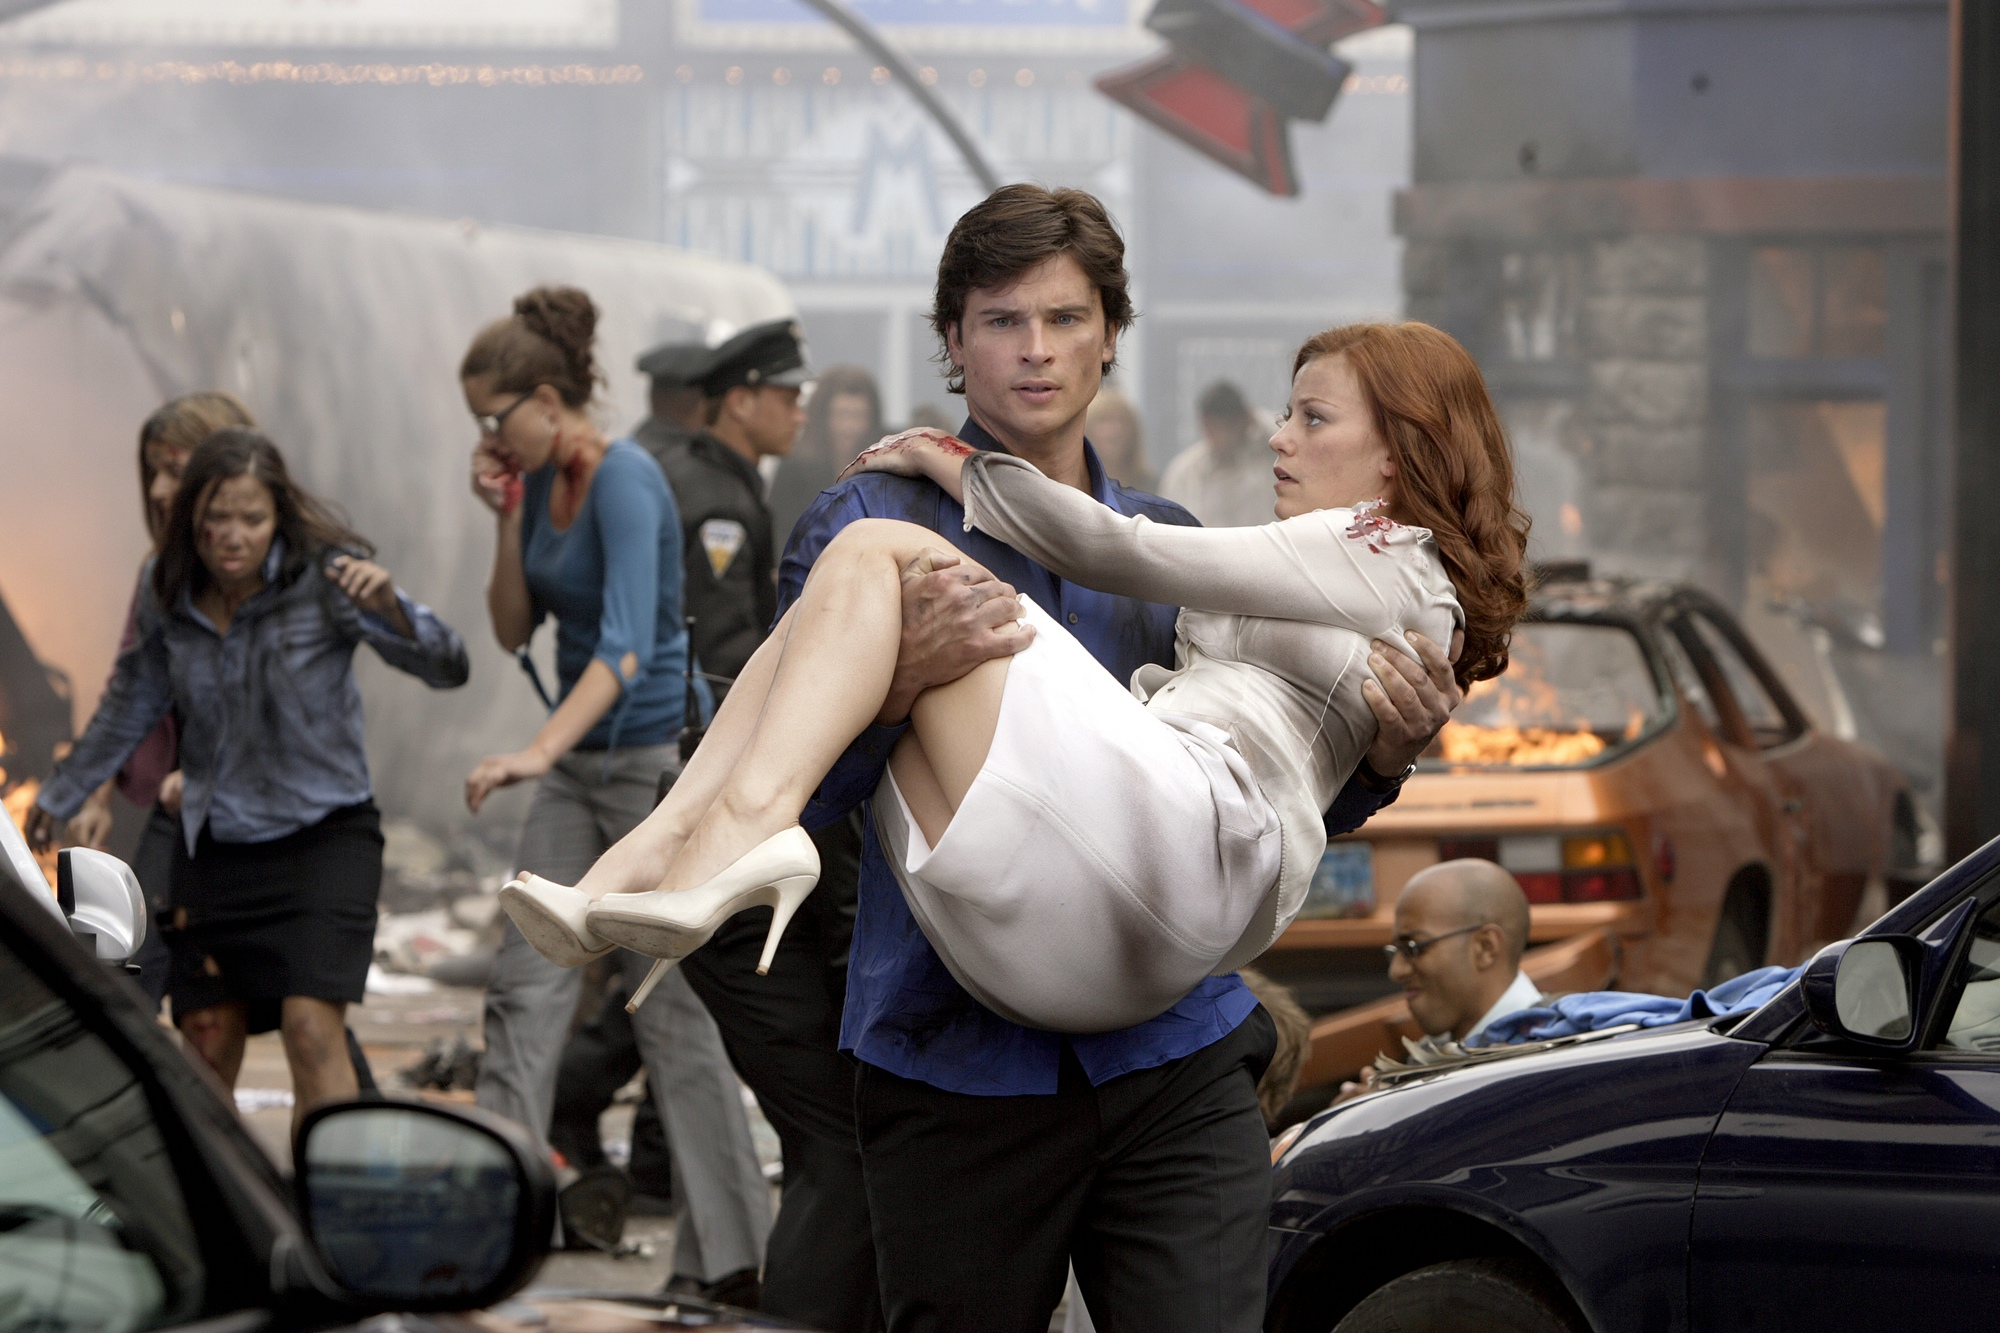 Smallville (TV Series) Episode: Plastique